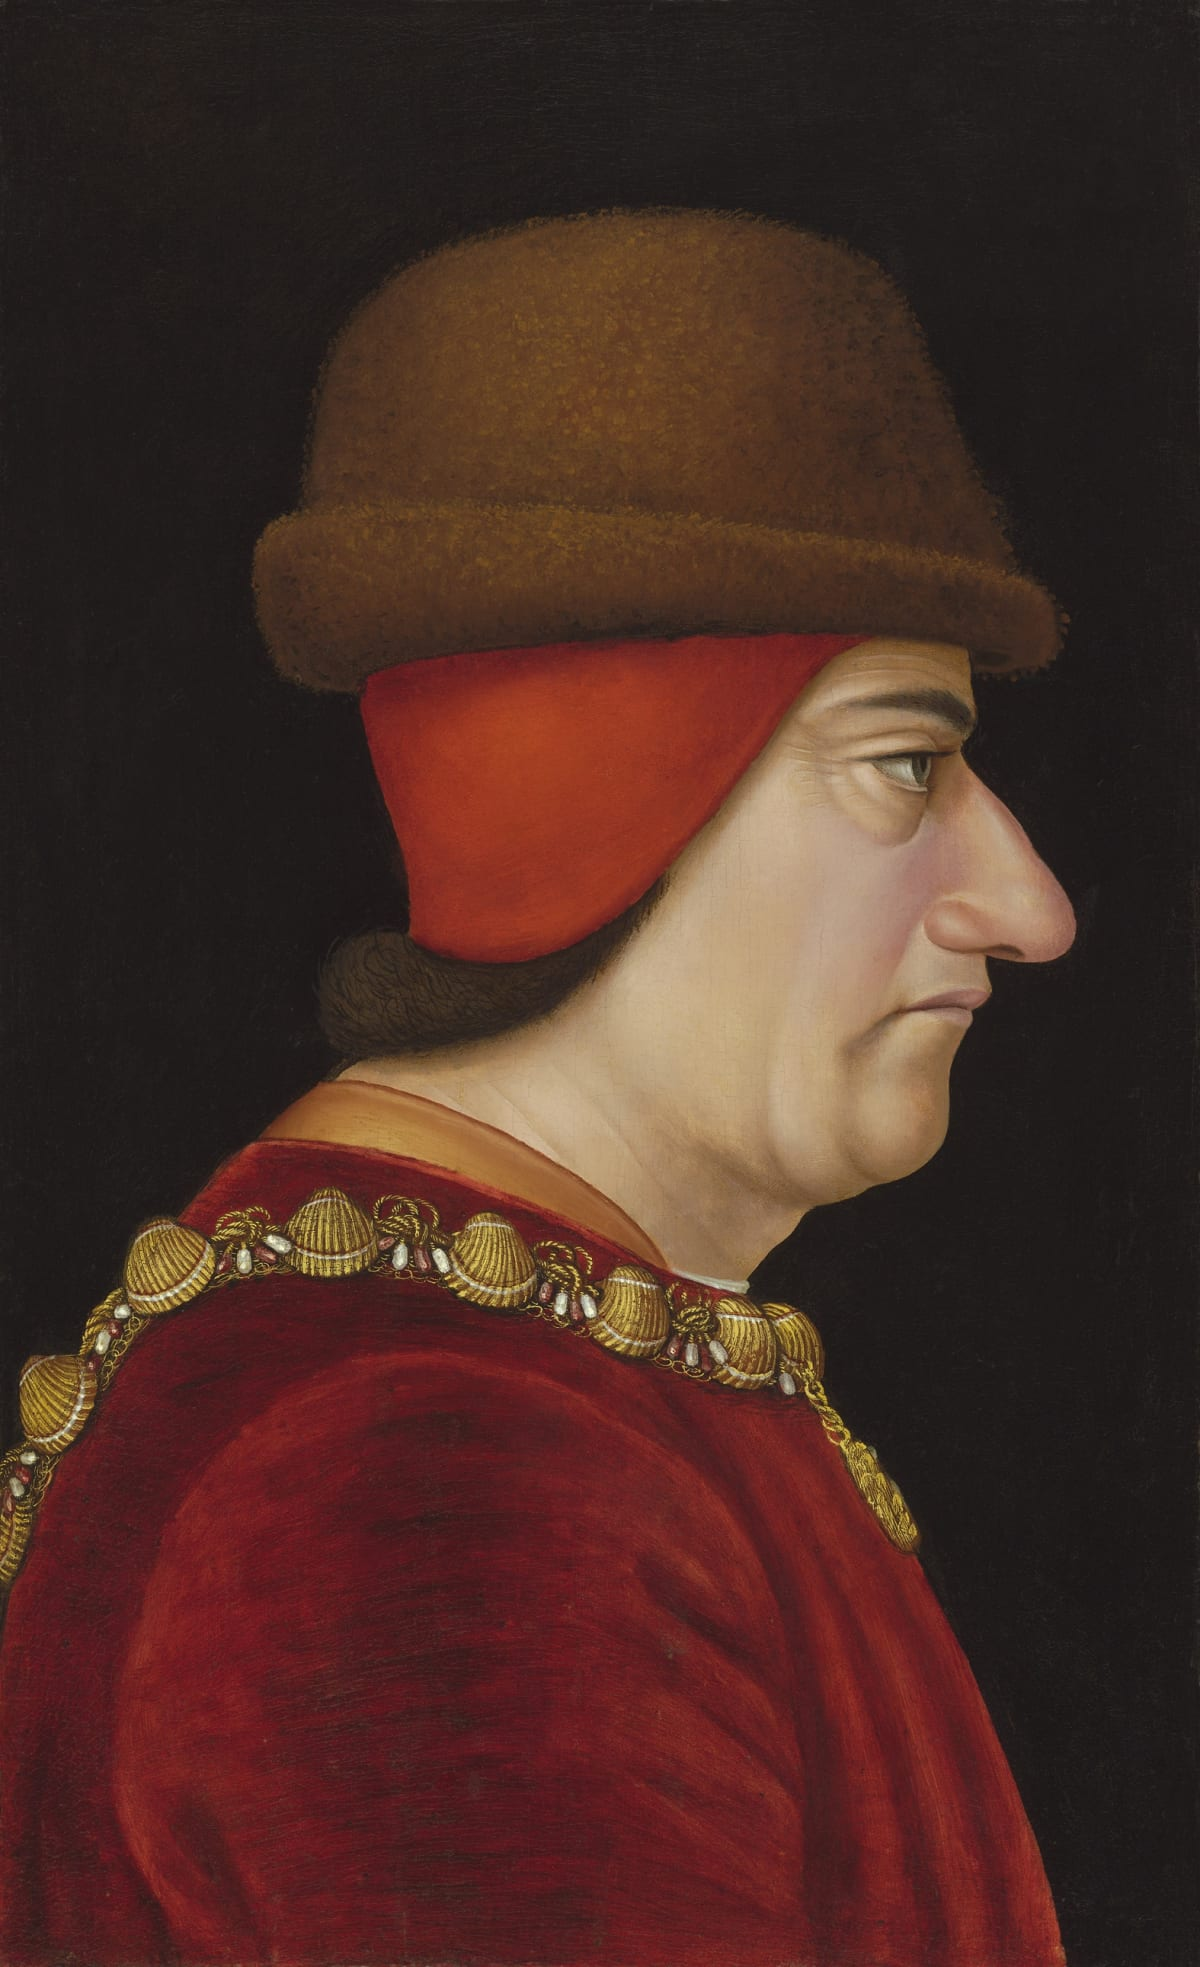 Attributed to Jacob de Litemont (d. 1475?) Louis XI, King of France (1423 – 1483), circa 1469 Oil on panel 14 ¾ x 8 ¾ in. (36.5 x 22.2 cm.)